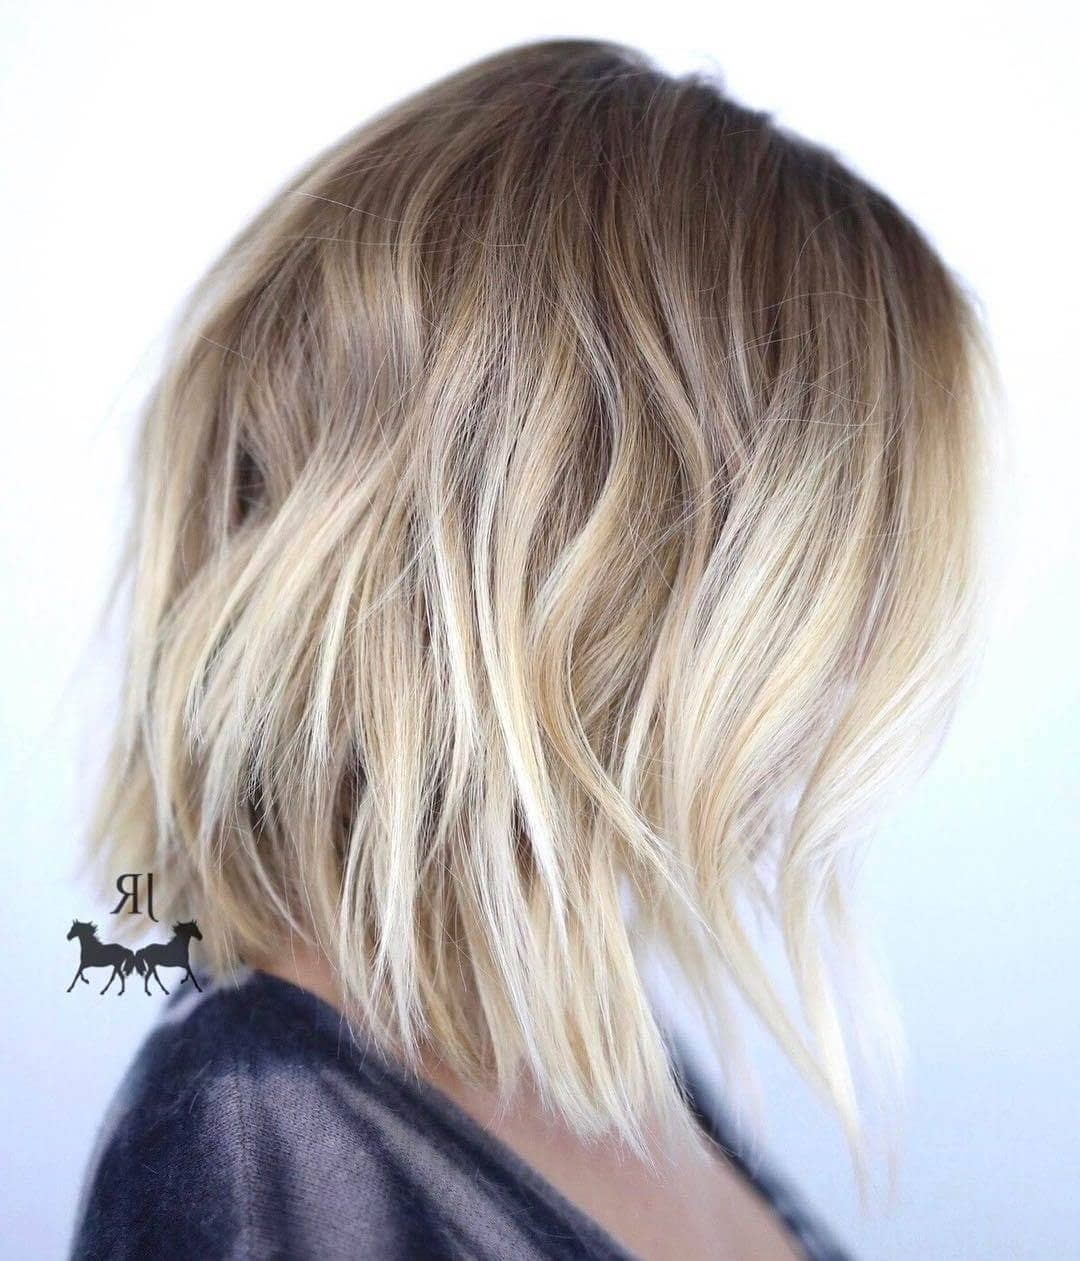 50 Fresh Short Blonde Hair Ideas To Update Your Style In 2018 With Choppy Golden Blonde Balayage Bob Hairstyles (View 10 of 20)